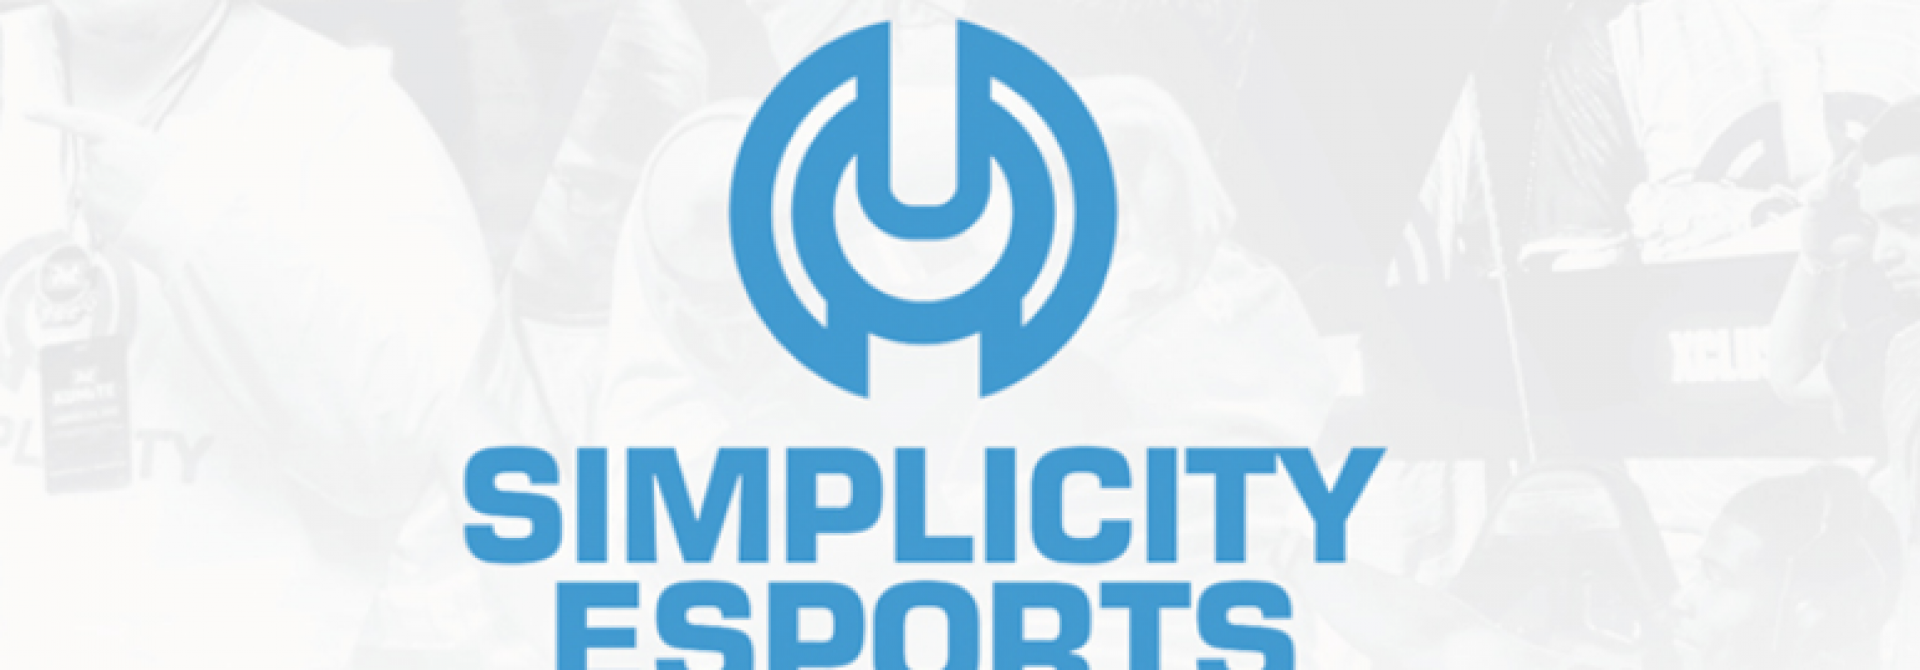 Simplicity Esports and Gaming Company Further Expands Its Retail Footprint with the Opening of a New Franchise Gaming Center in One of the Largest Malls in the U.S.